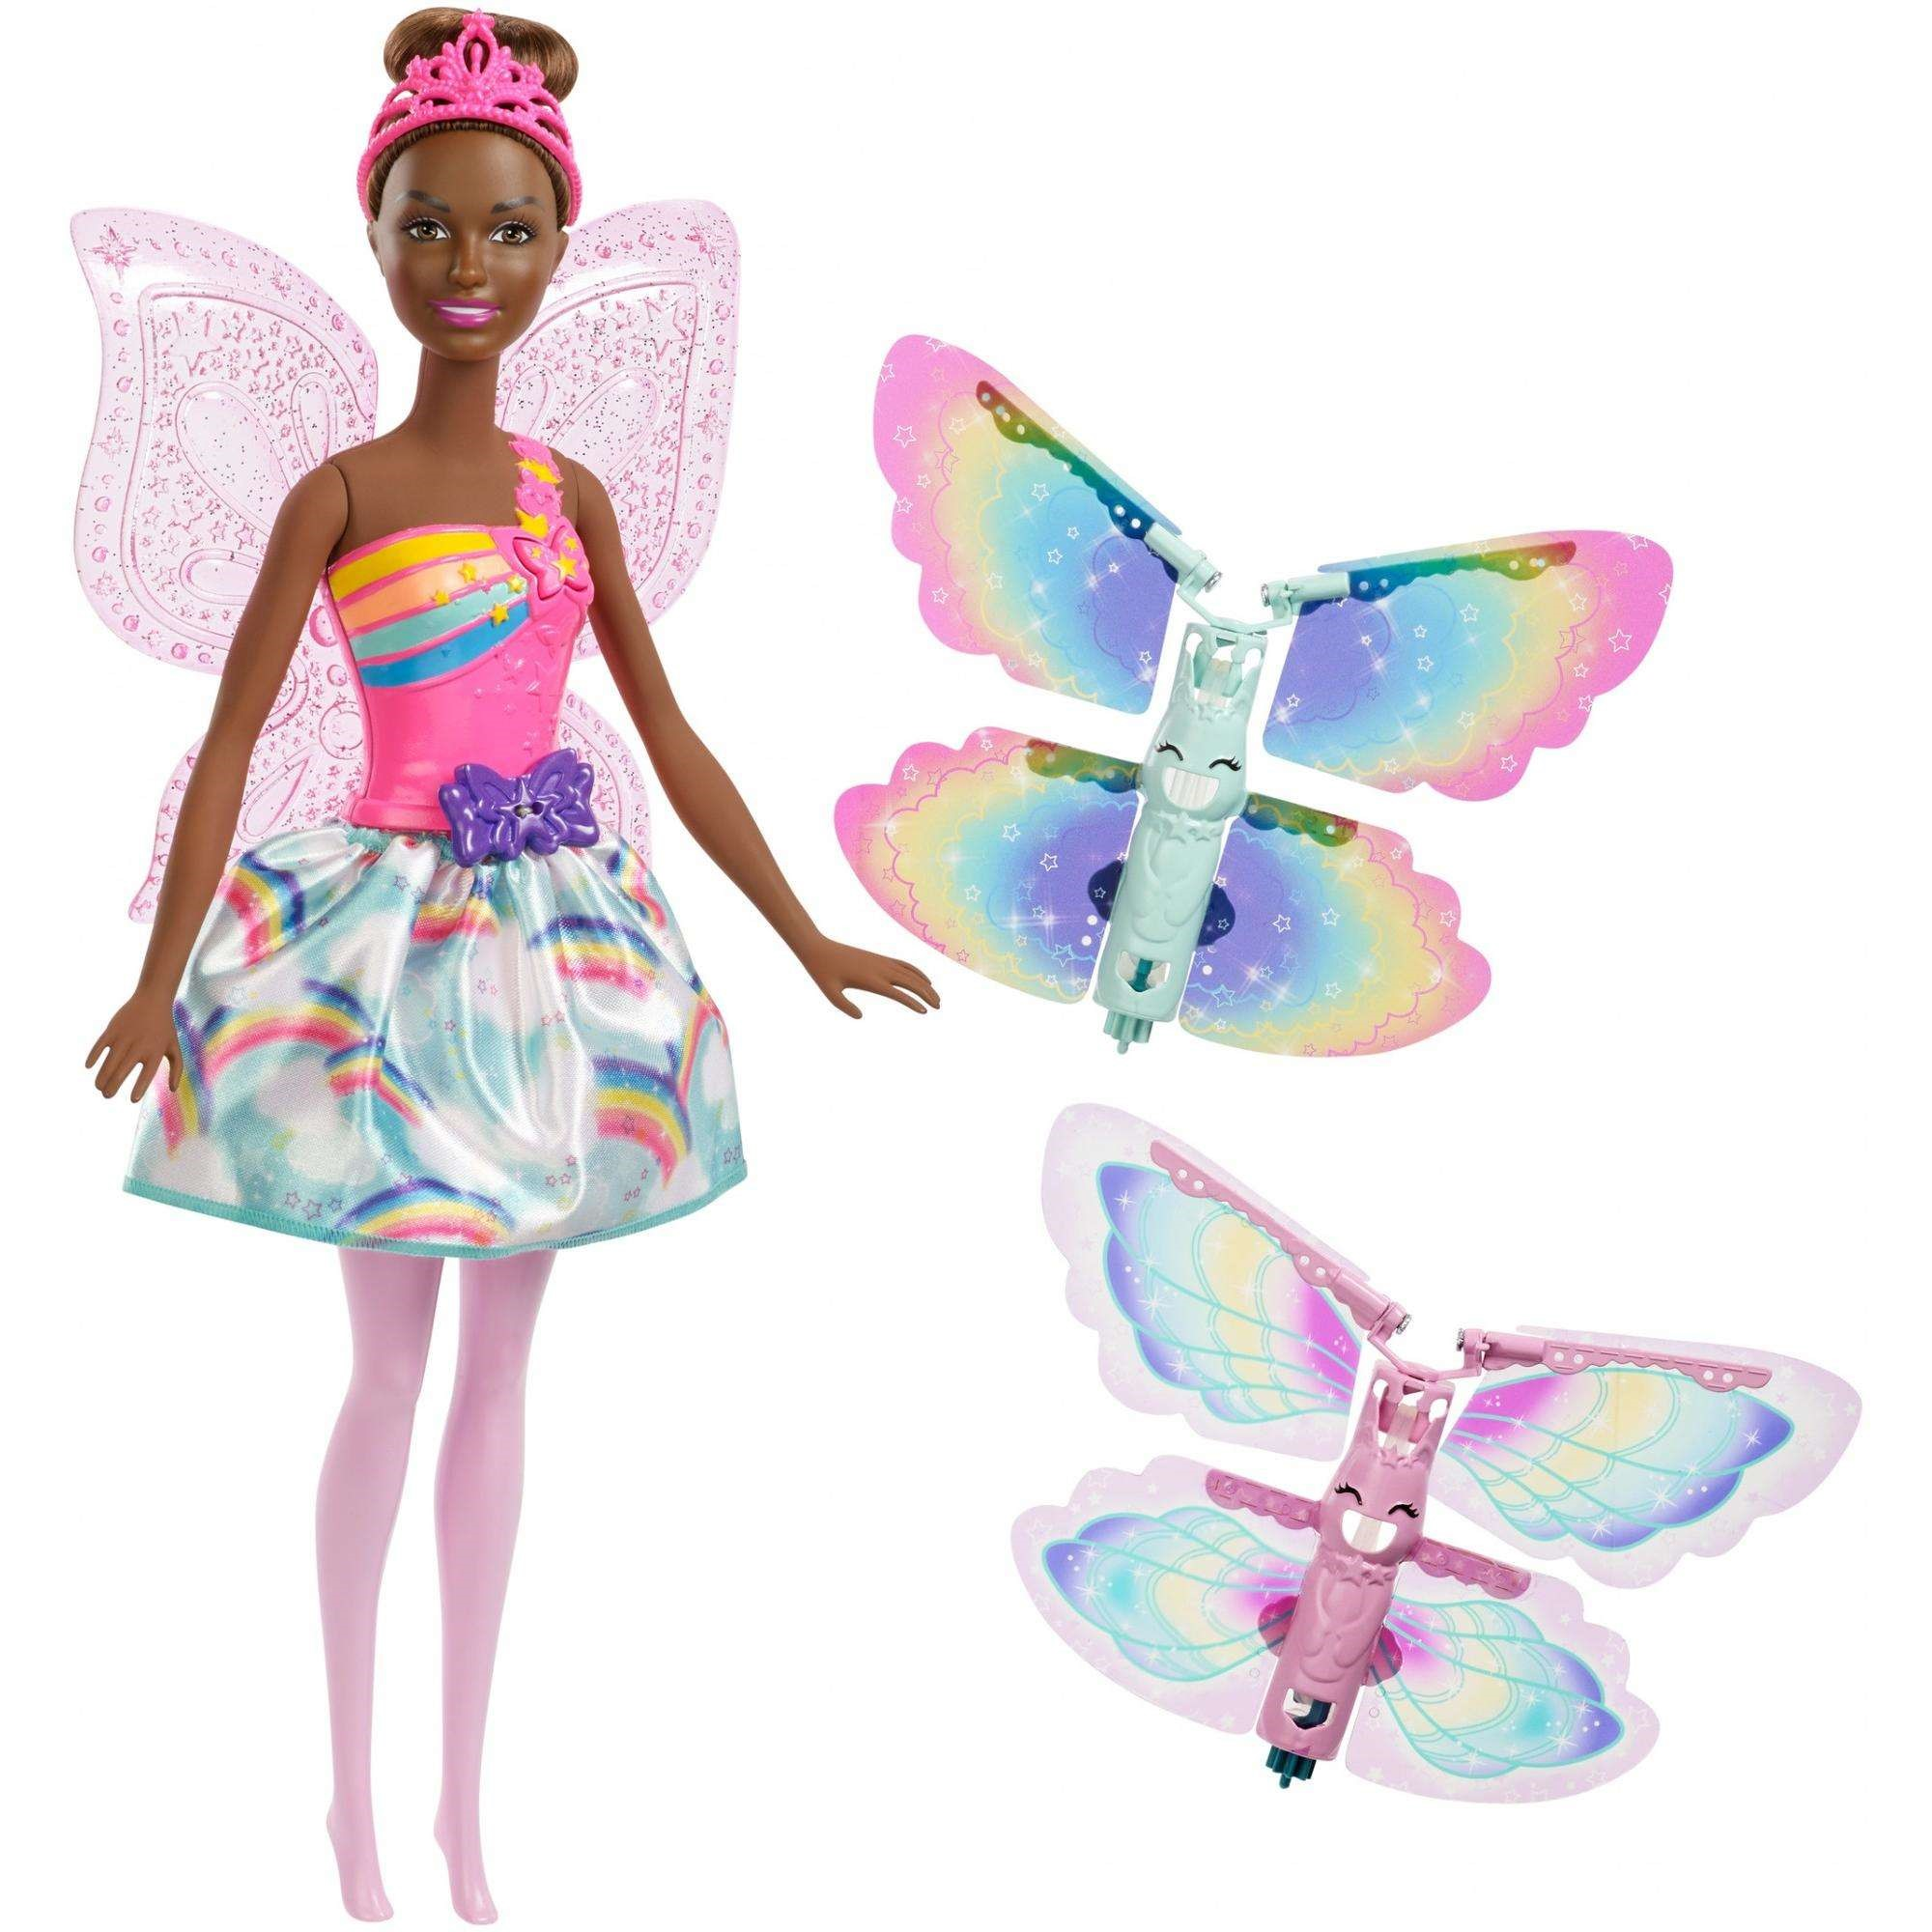 Barbie Dreamtopia Flying Wings Fairy Doll with Extra Pair of Wings